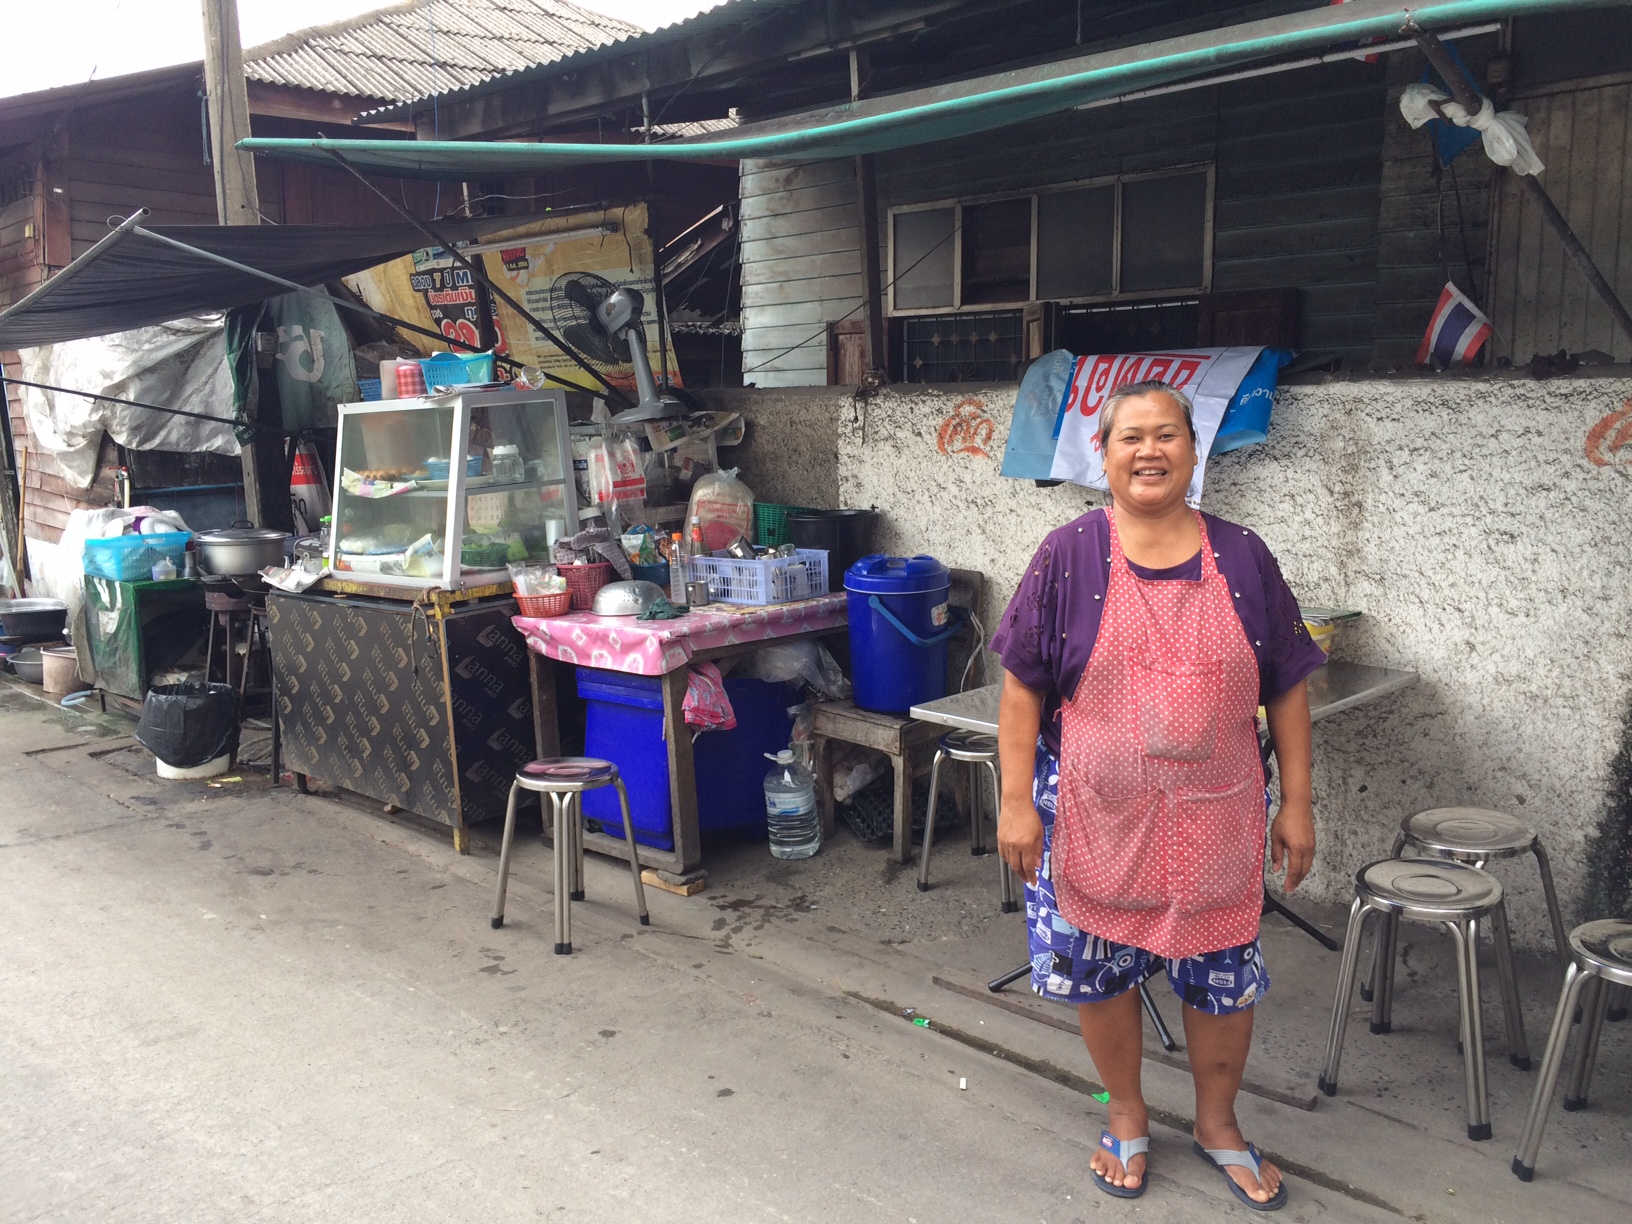 Bangkok street food stall in dusty back alley